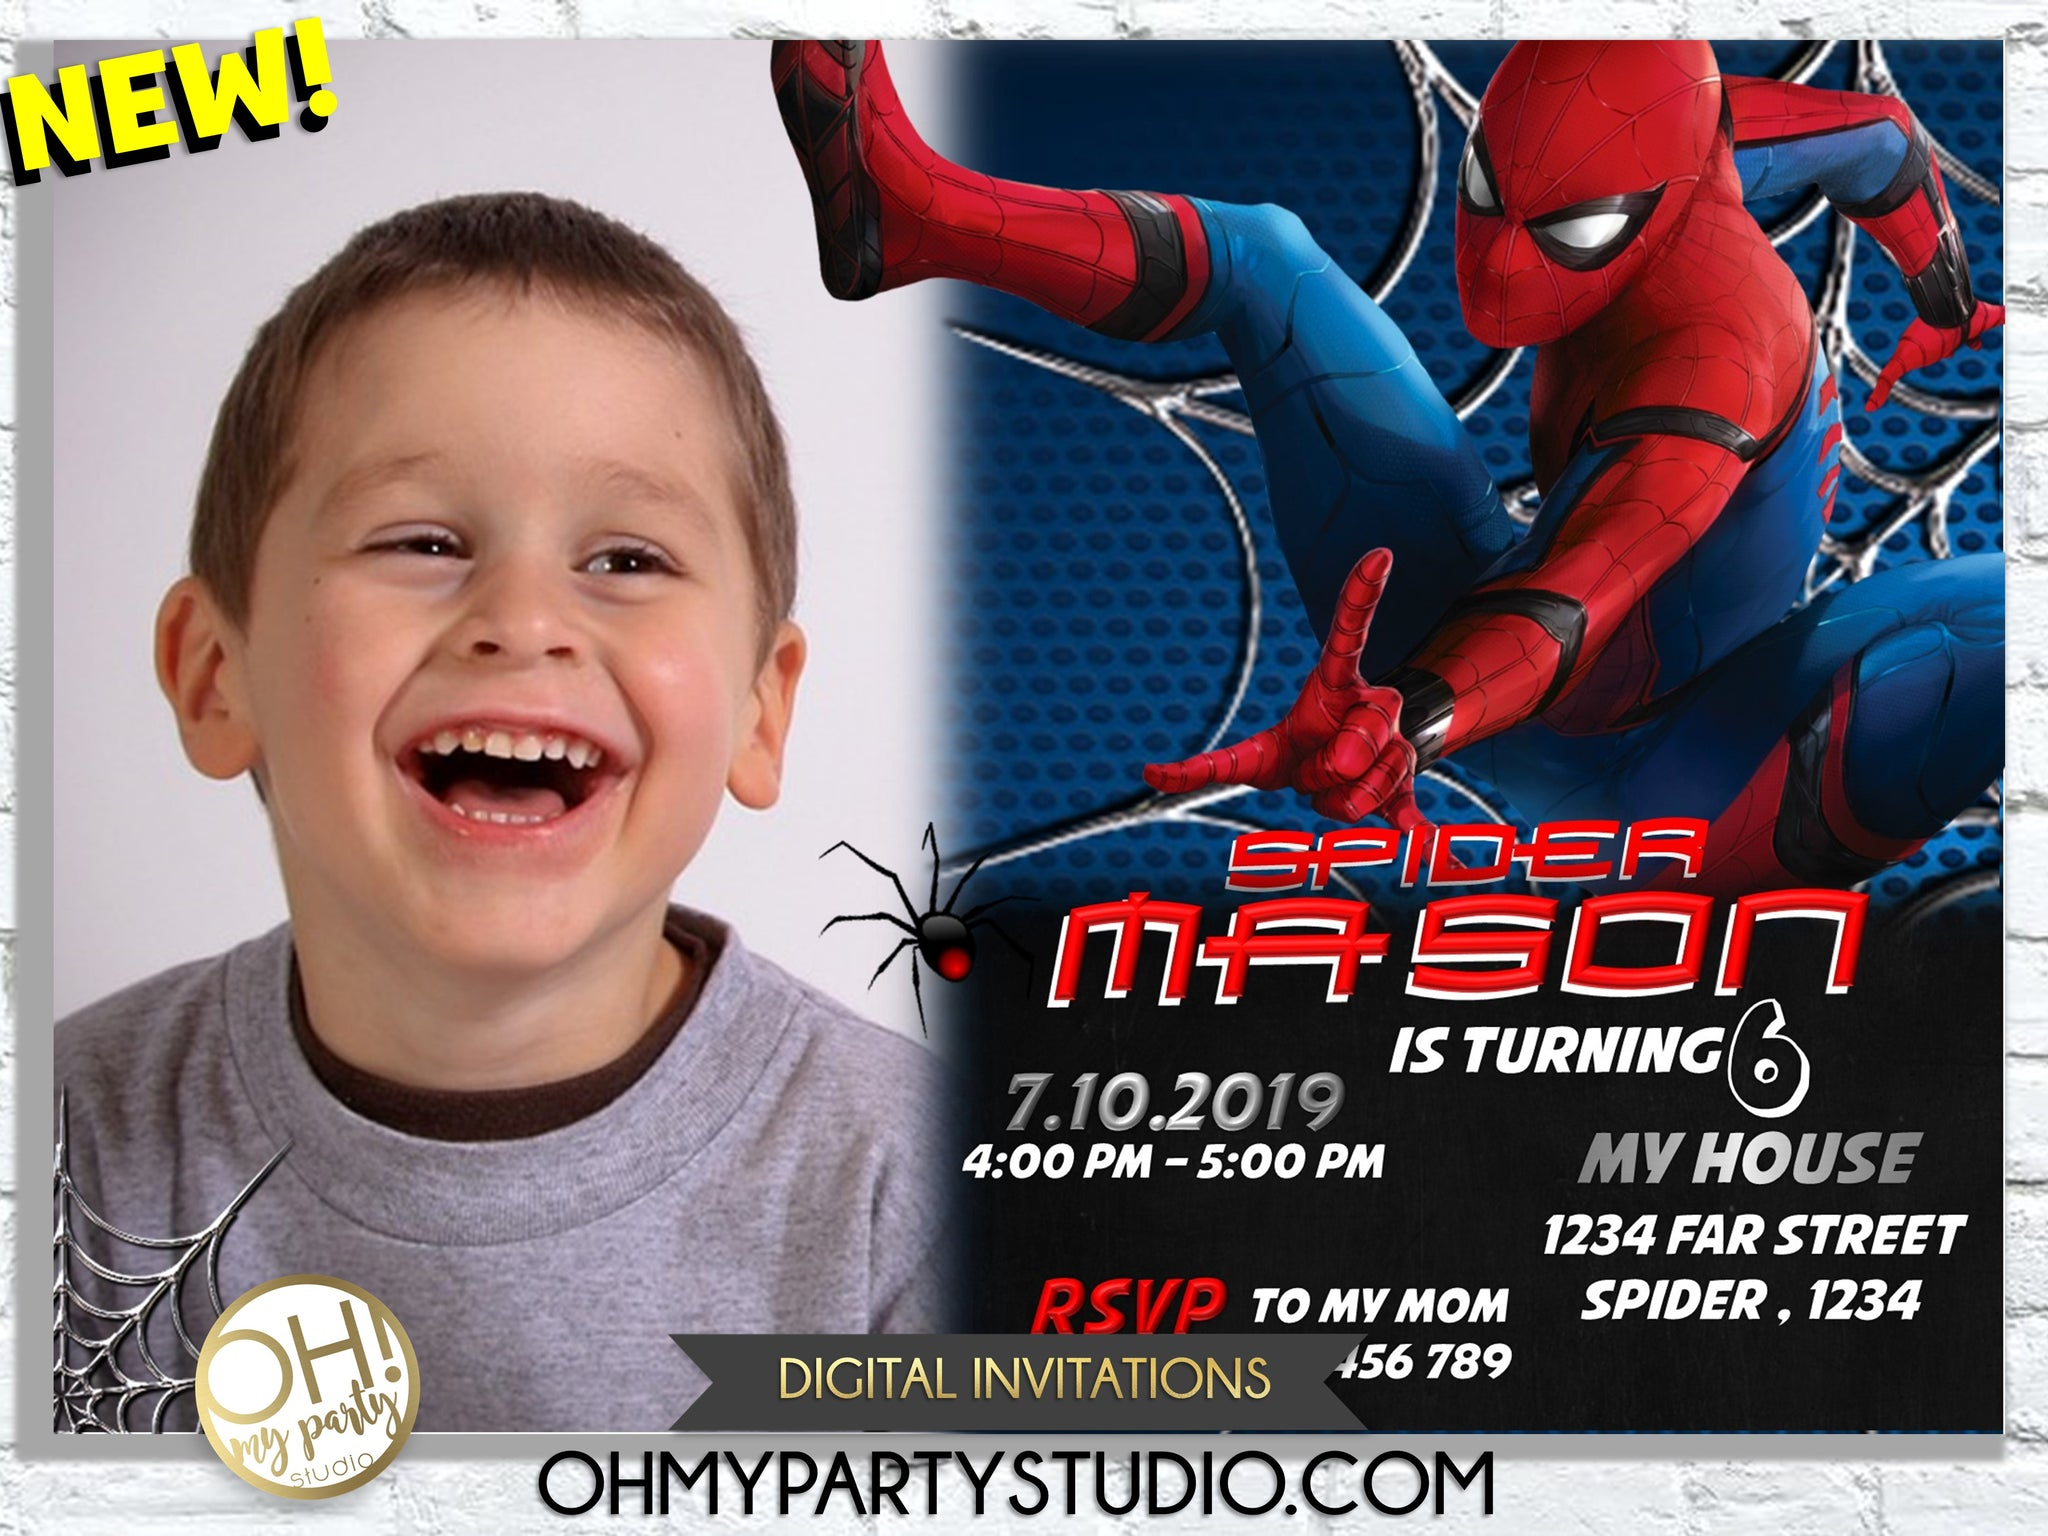 SPIDERMAN FAR FROM HOME INVITATION, SPIDER-MAN FAR FROM HOME INVITATION, SPIDERMAN FAR FROM HOME INVITATIONS, SPIDER-MAN FAR FROM HOME INVITATIONS, SPIDER FAR FROM HOME INVITE, SPIDER FAR FROM HOME INVITATIONS, SPIDERMAN FAR FROM HOME PARTY, SPIDERMAN FAR FROM HOME BIRTHDAY, SPIDERMAN FAR FROM HOME INVITE